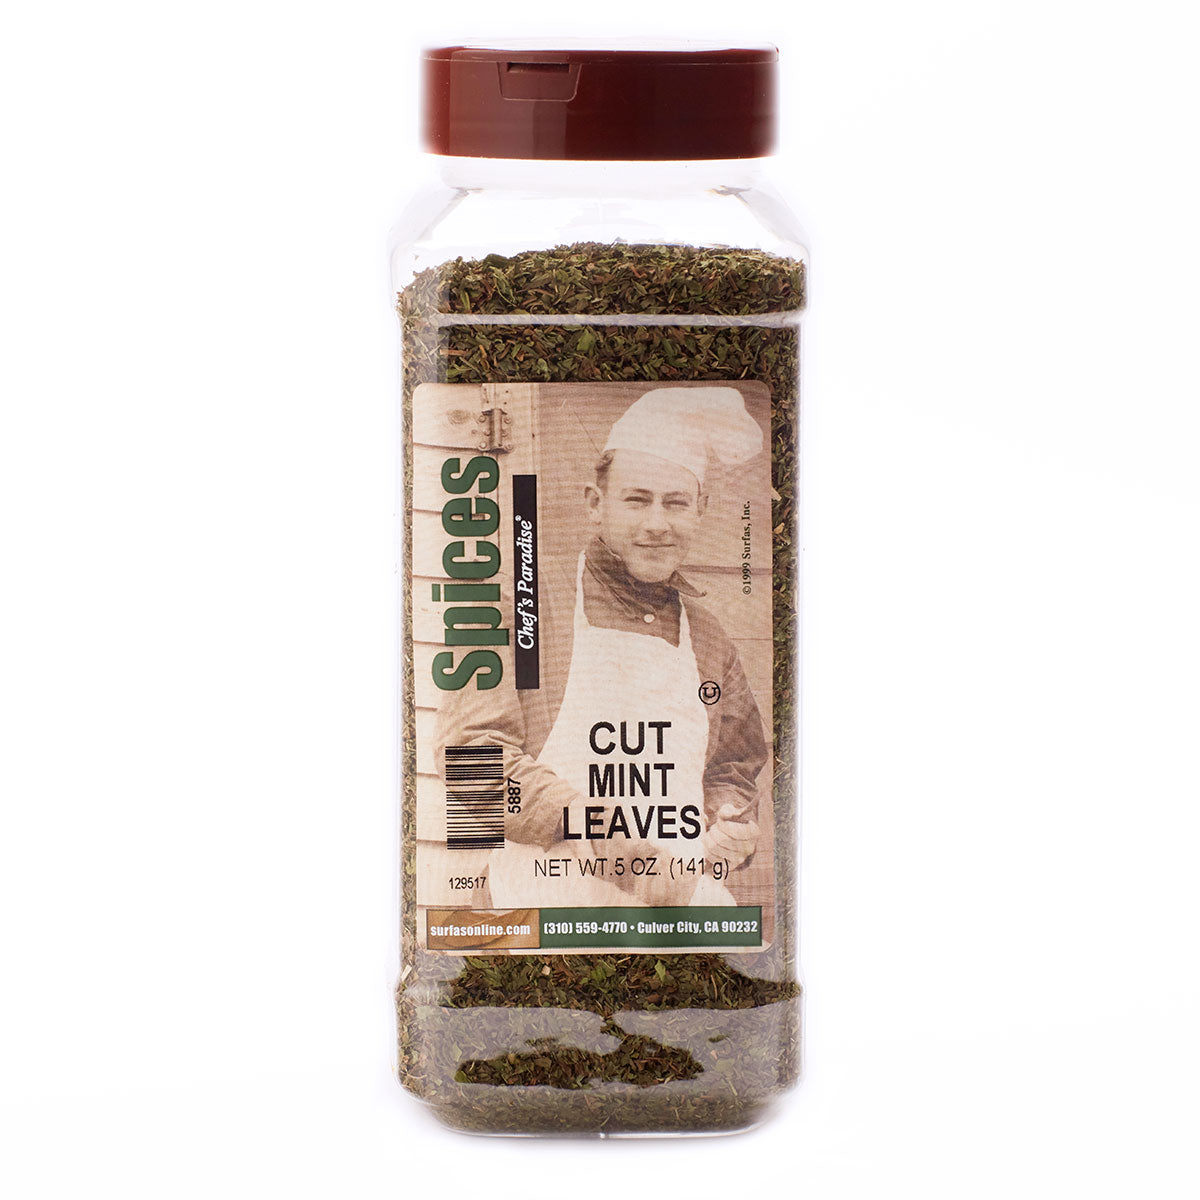 Mint Leaves Cut 5oz